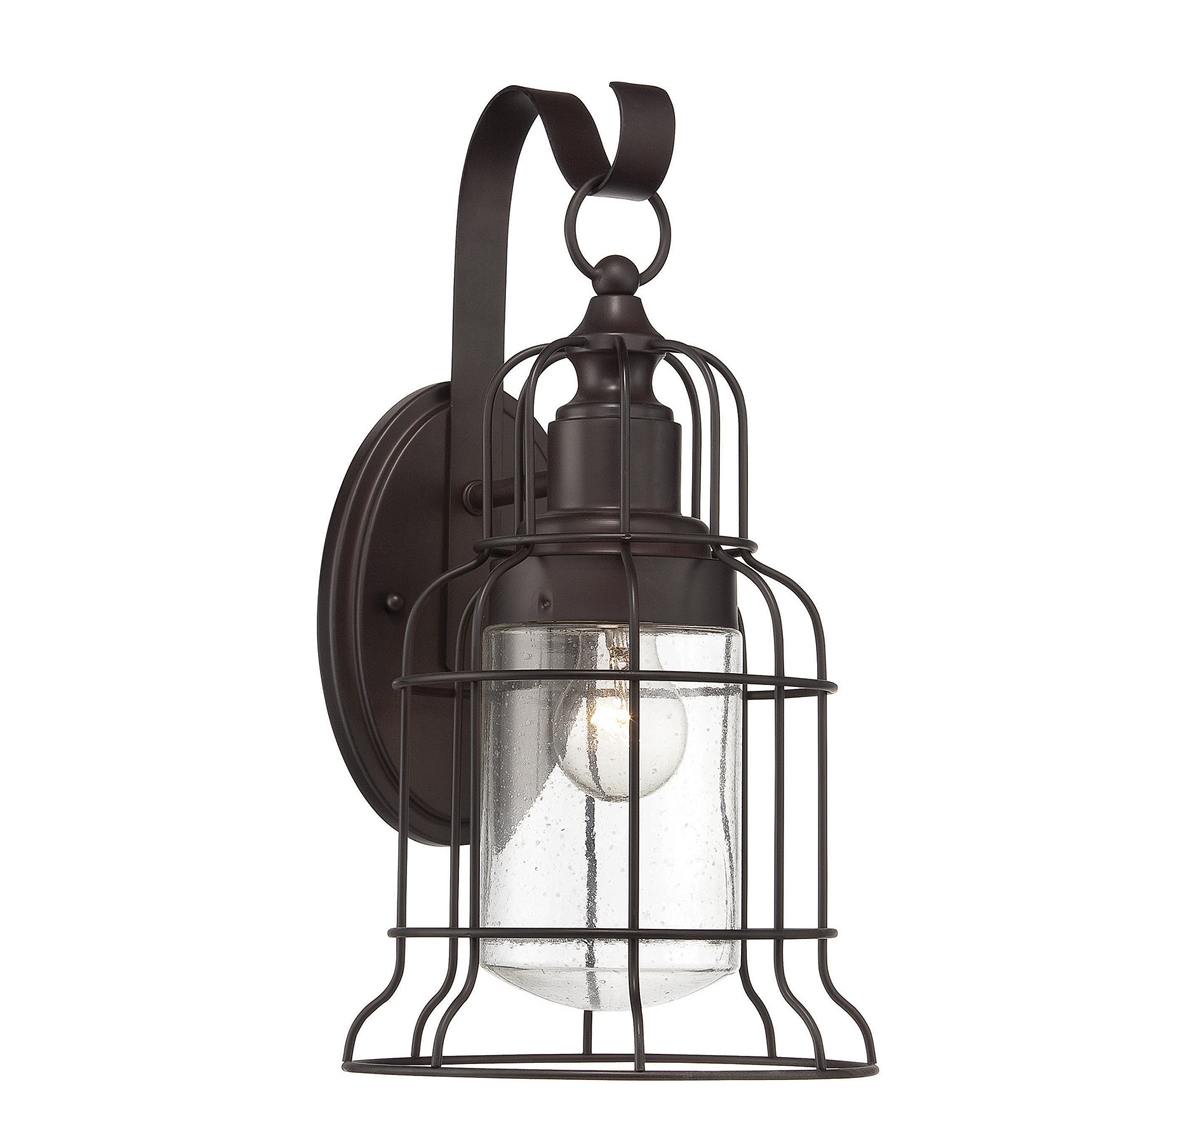 Savoy House 5 8071 1 13 Scout Large Wall Lantern In